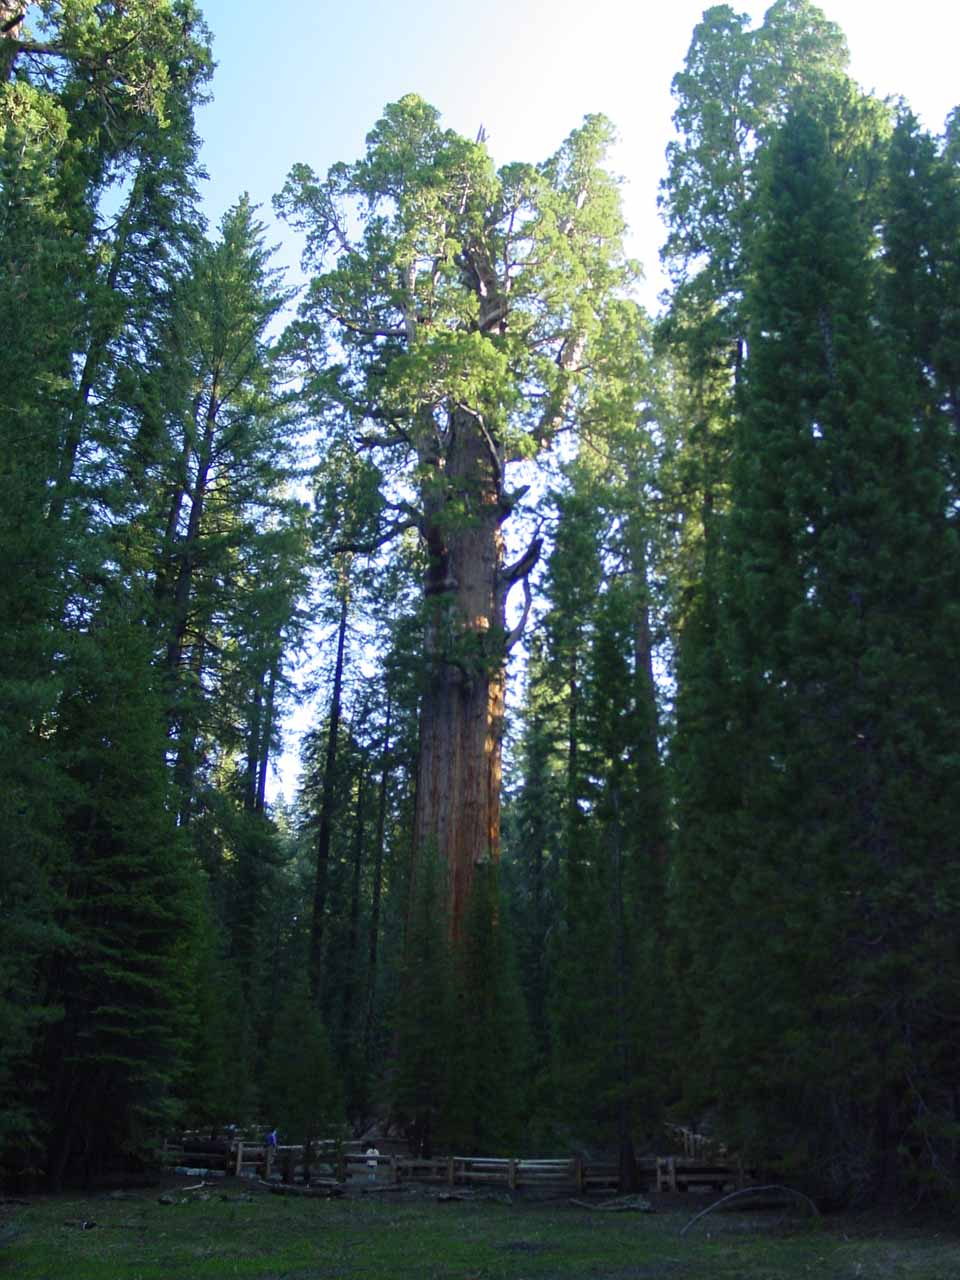 Also the south of Lodgepole was the Giant Forest, which featured the General Sherman Tree - the largest one in Sequoia National Park